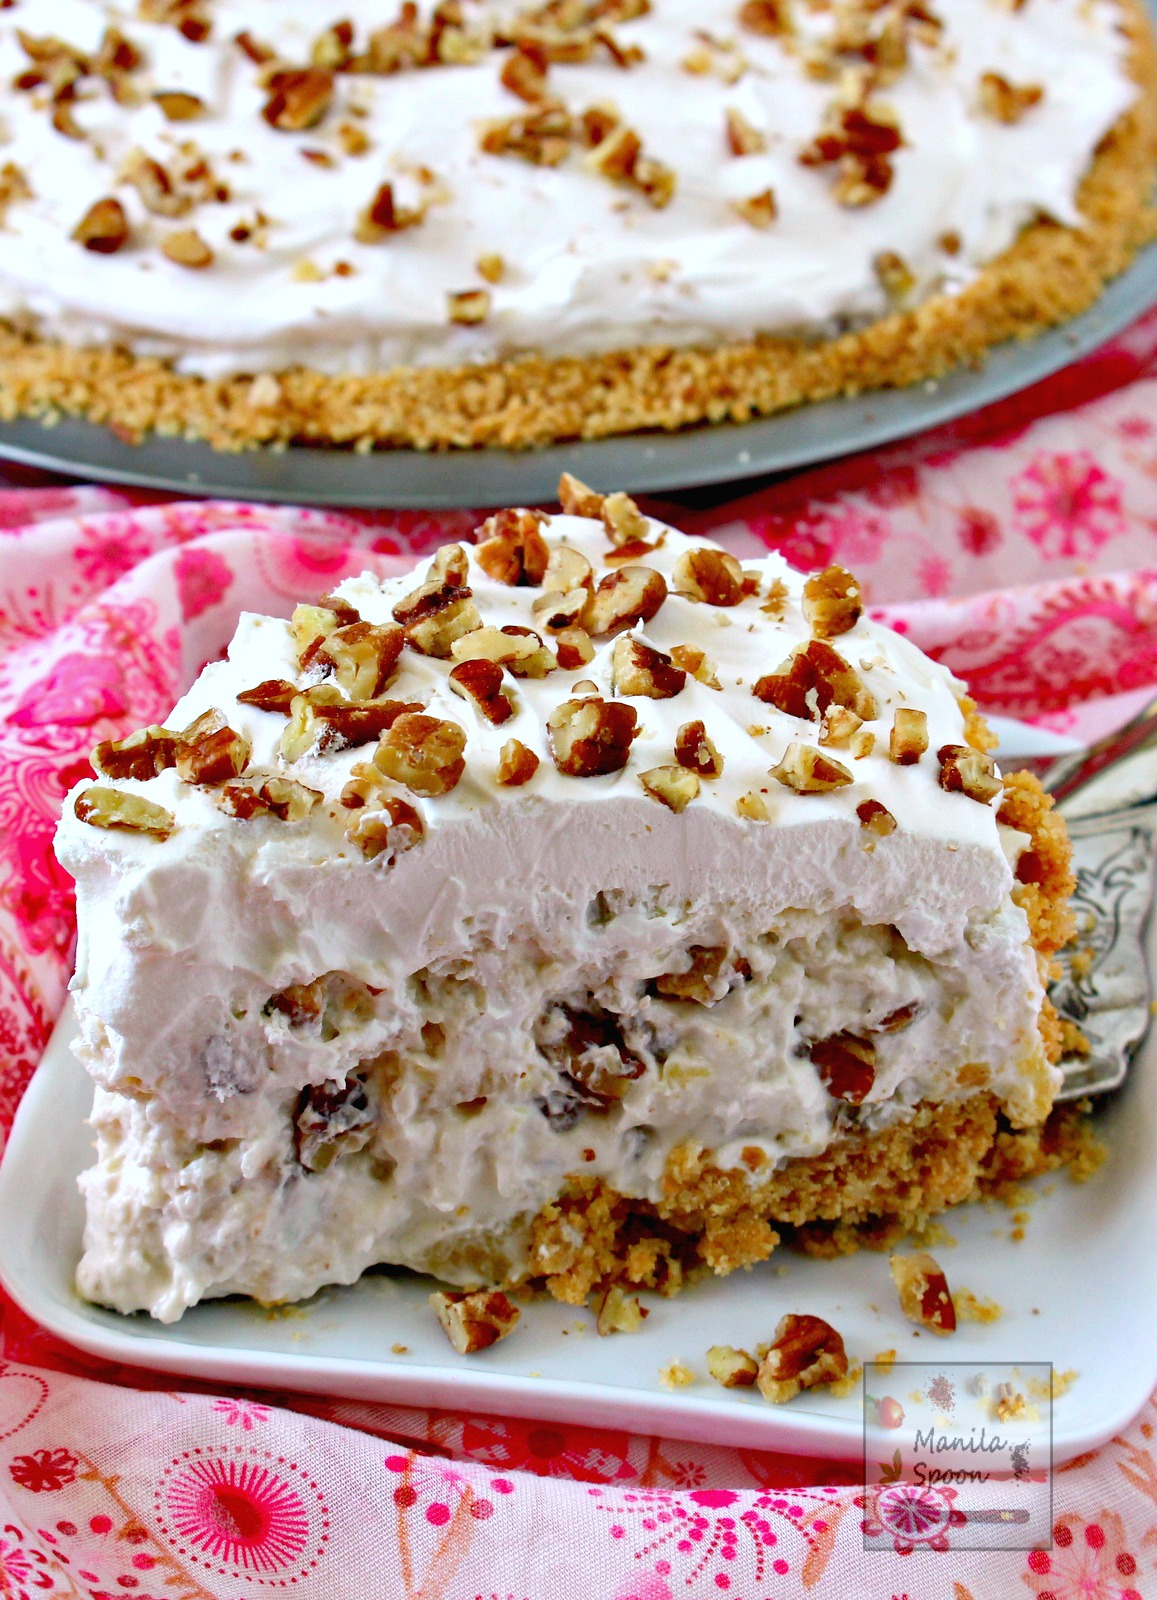 In 15 minutes or less you can make this easy and yummy classic pie that's creamy, fruity-sweet, light and no bake, too. We served this in a potluck and it was a huge hit! Perfect for Christmas and New Year celebrations!!| manilaspoon.com